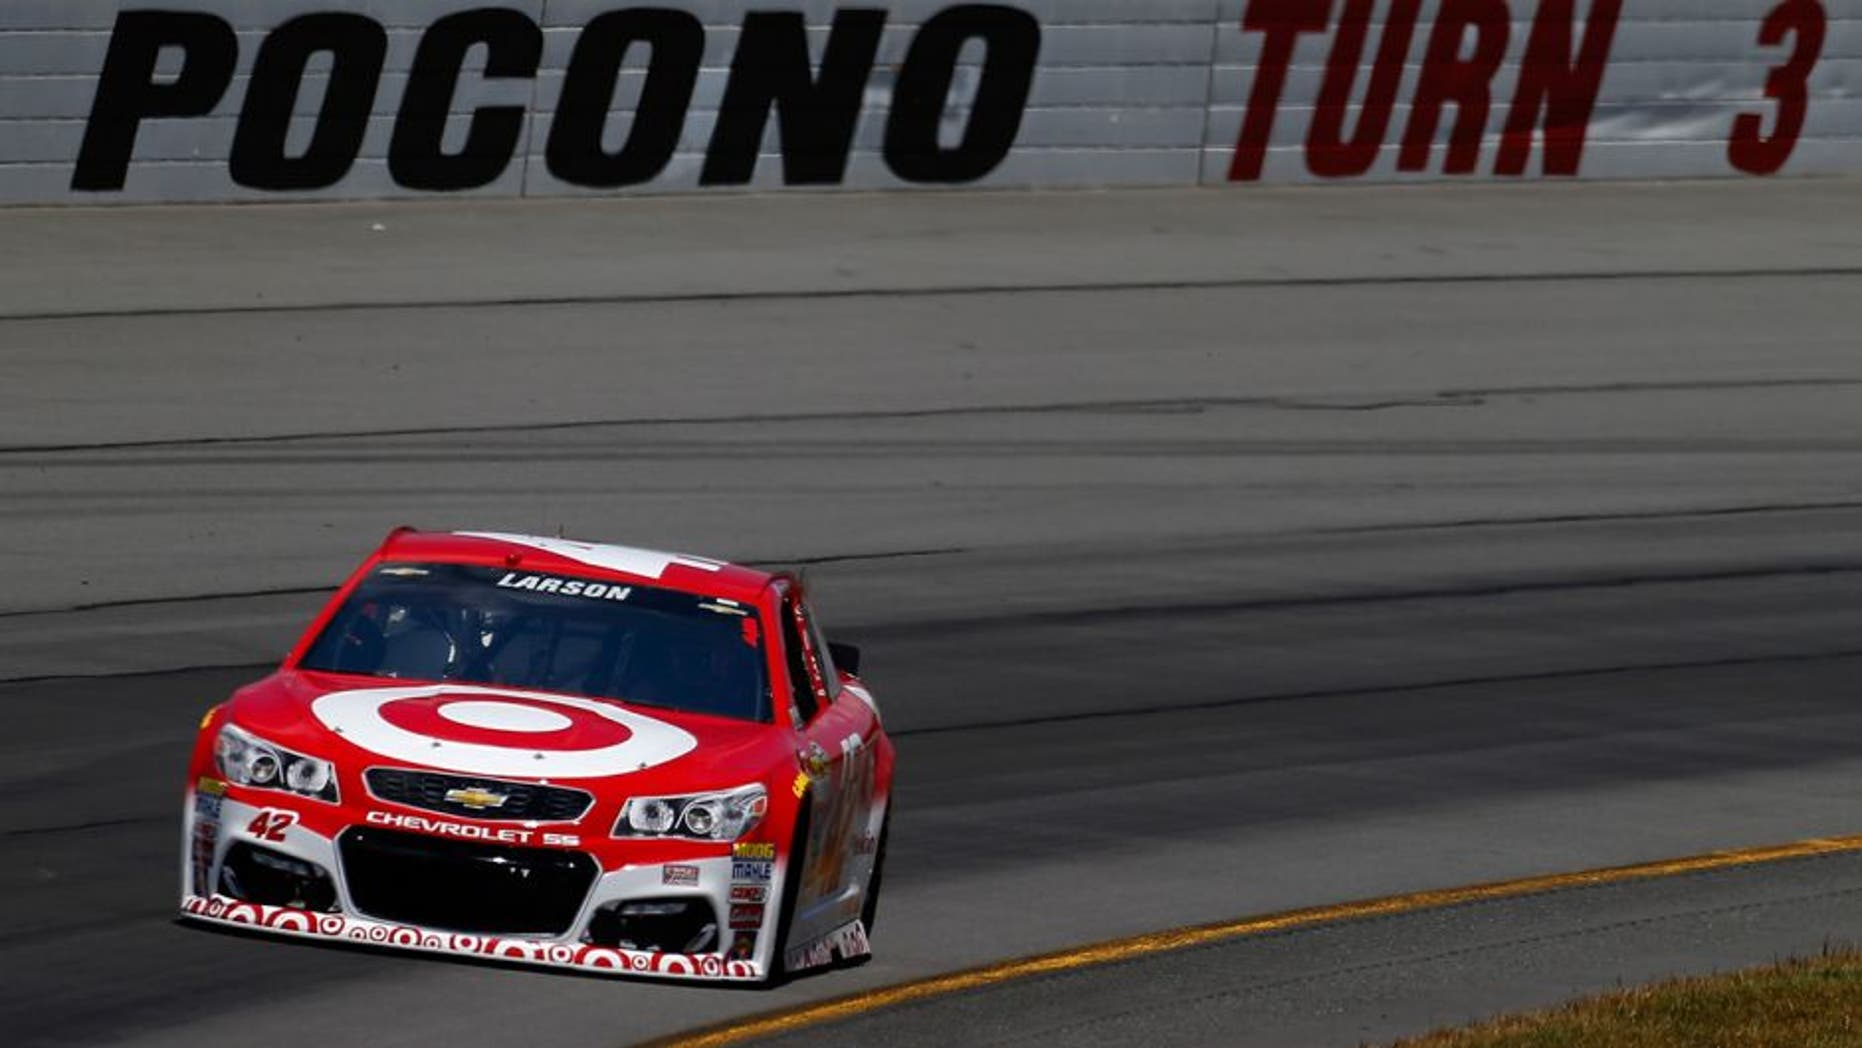 """LONG POND, PA - JUNE 06: Kyle Larson drives the #42 Target Chevrolet during the NASCAR Sprint Cup Series Axalta """"We Paint Winners"""" 400 at Pocono Raceway on June 6, 2016 in Long Pond, Pennsylvania. (Photo by Jonathan Ferrey/NASCAR via Getty Images)"""